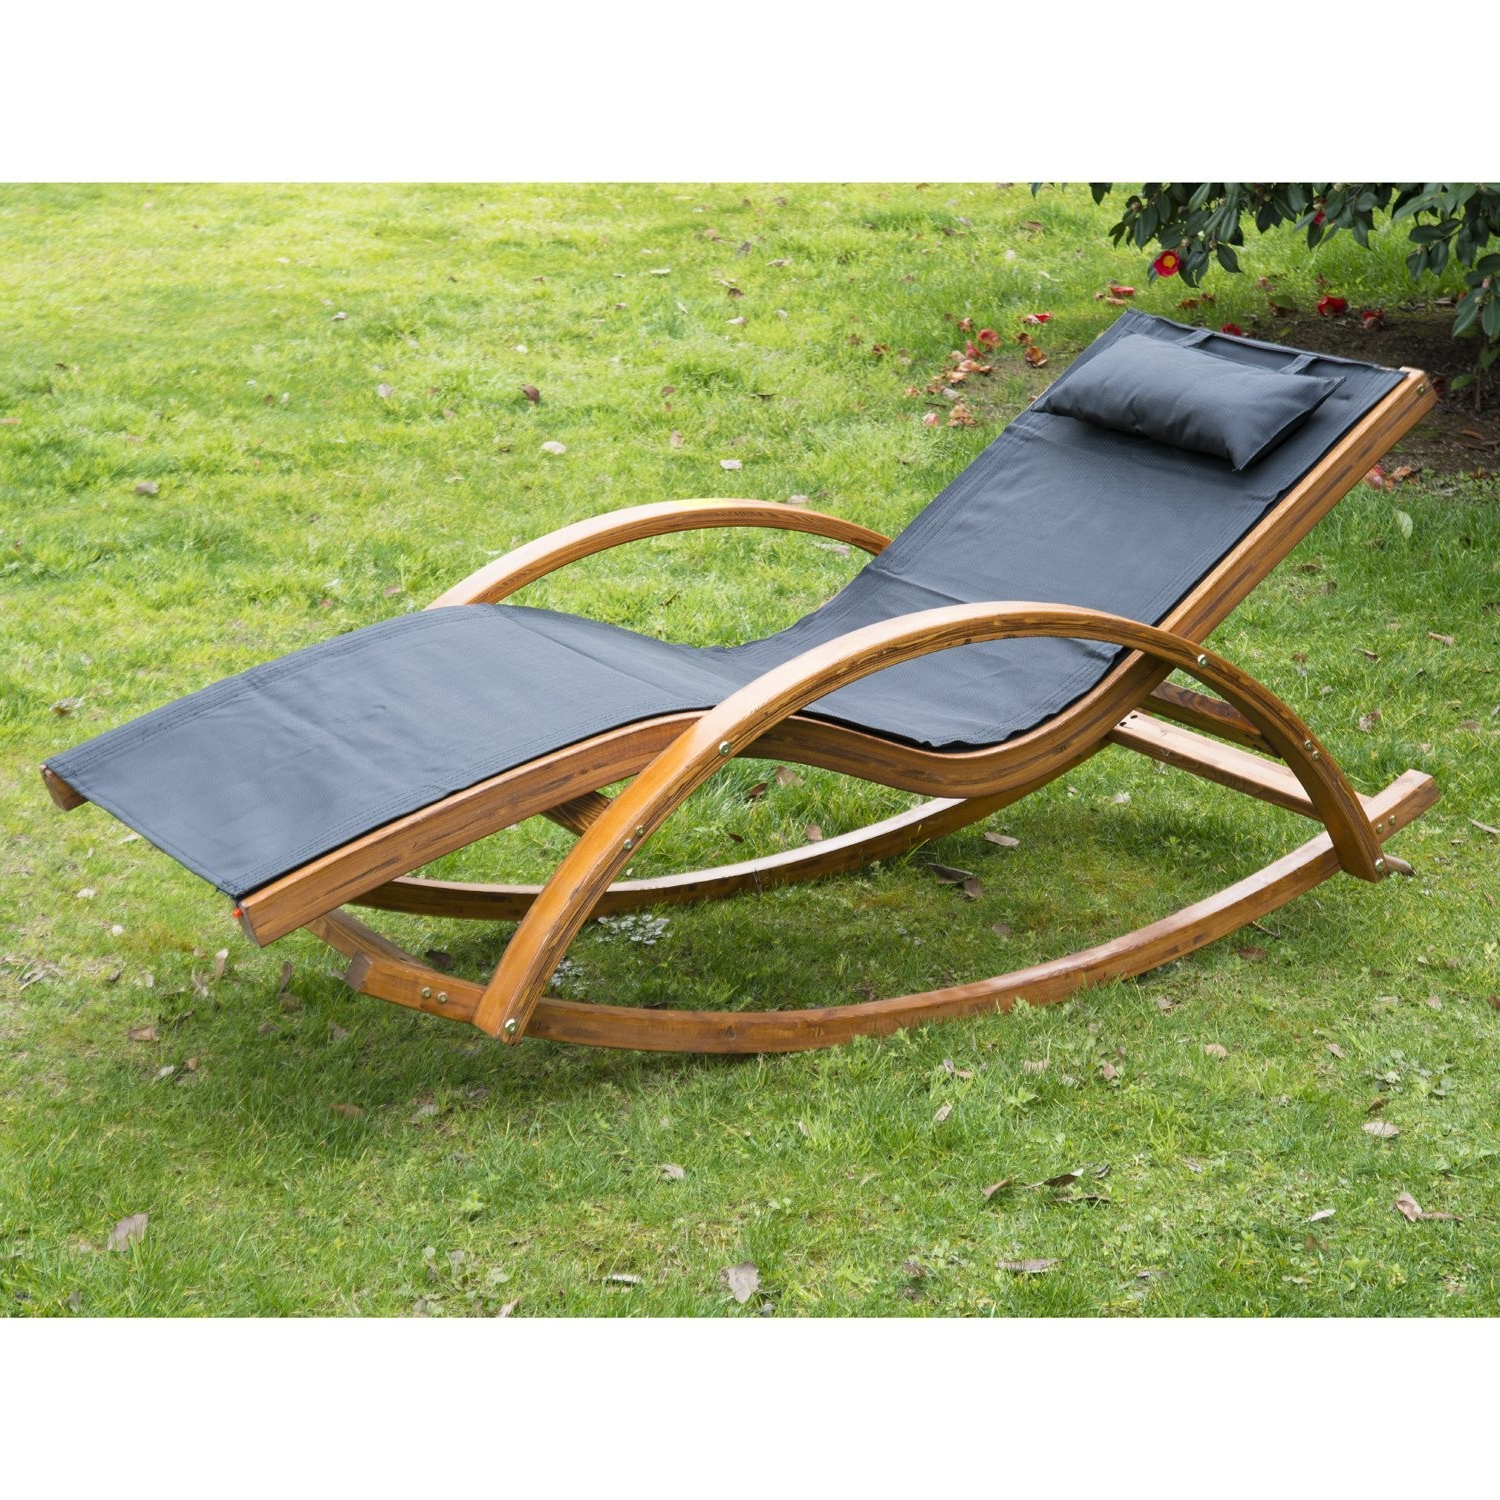 Outsunny Wooden Garden Recliner Rocker Lounger – Ideal Home Intended For Best And Newest Outdoor Rocking Loungers (Gallery 22 of 25)